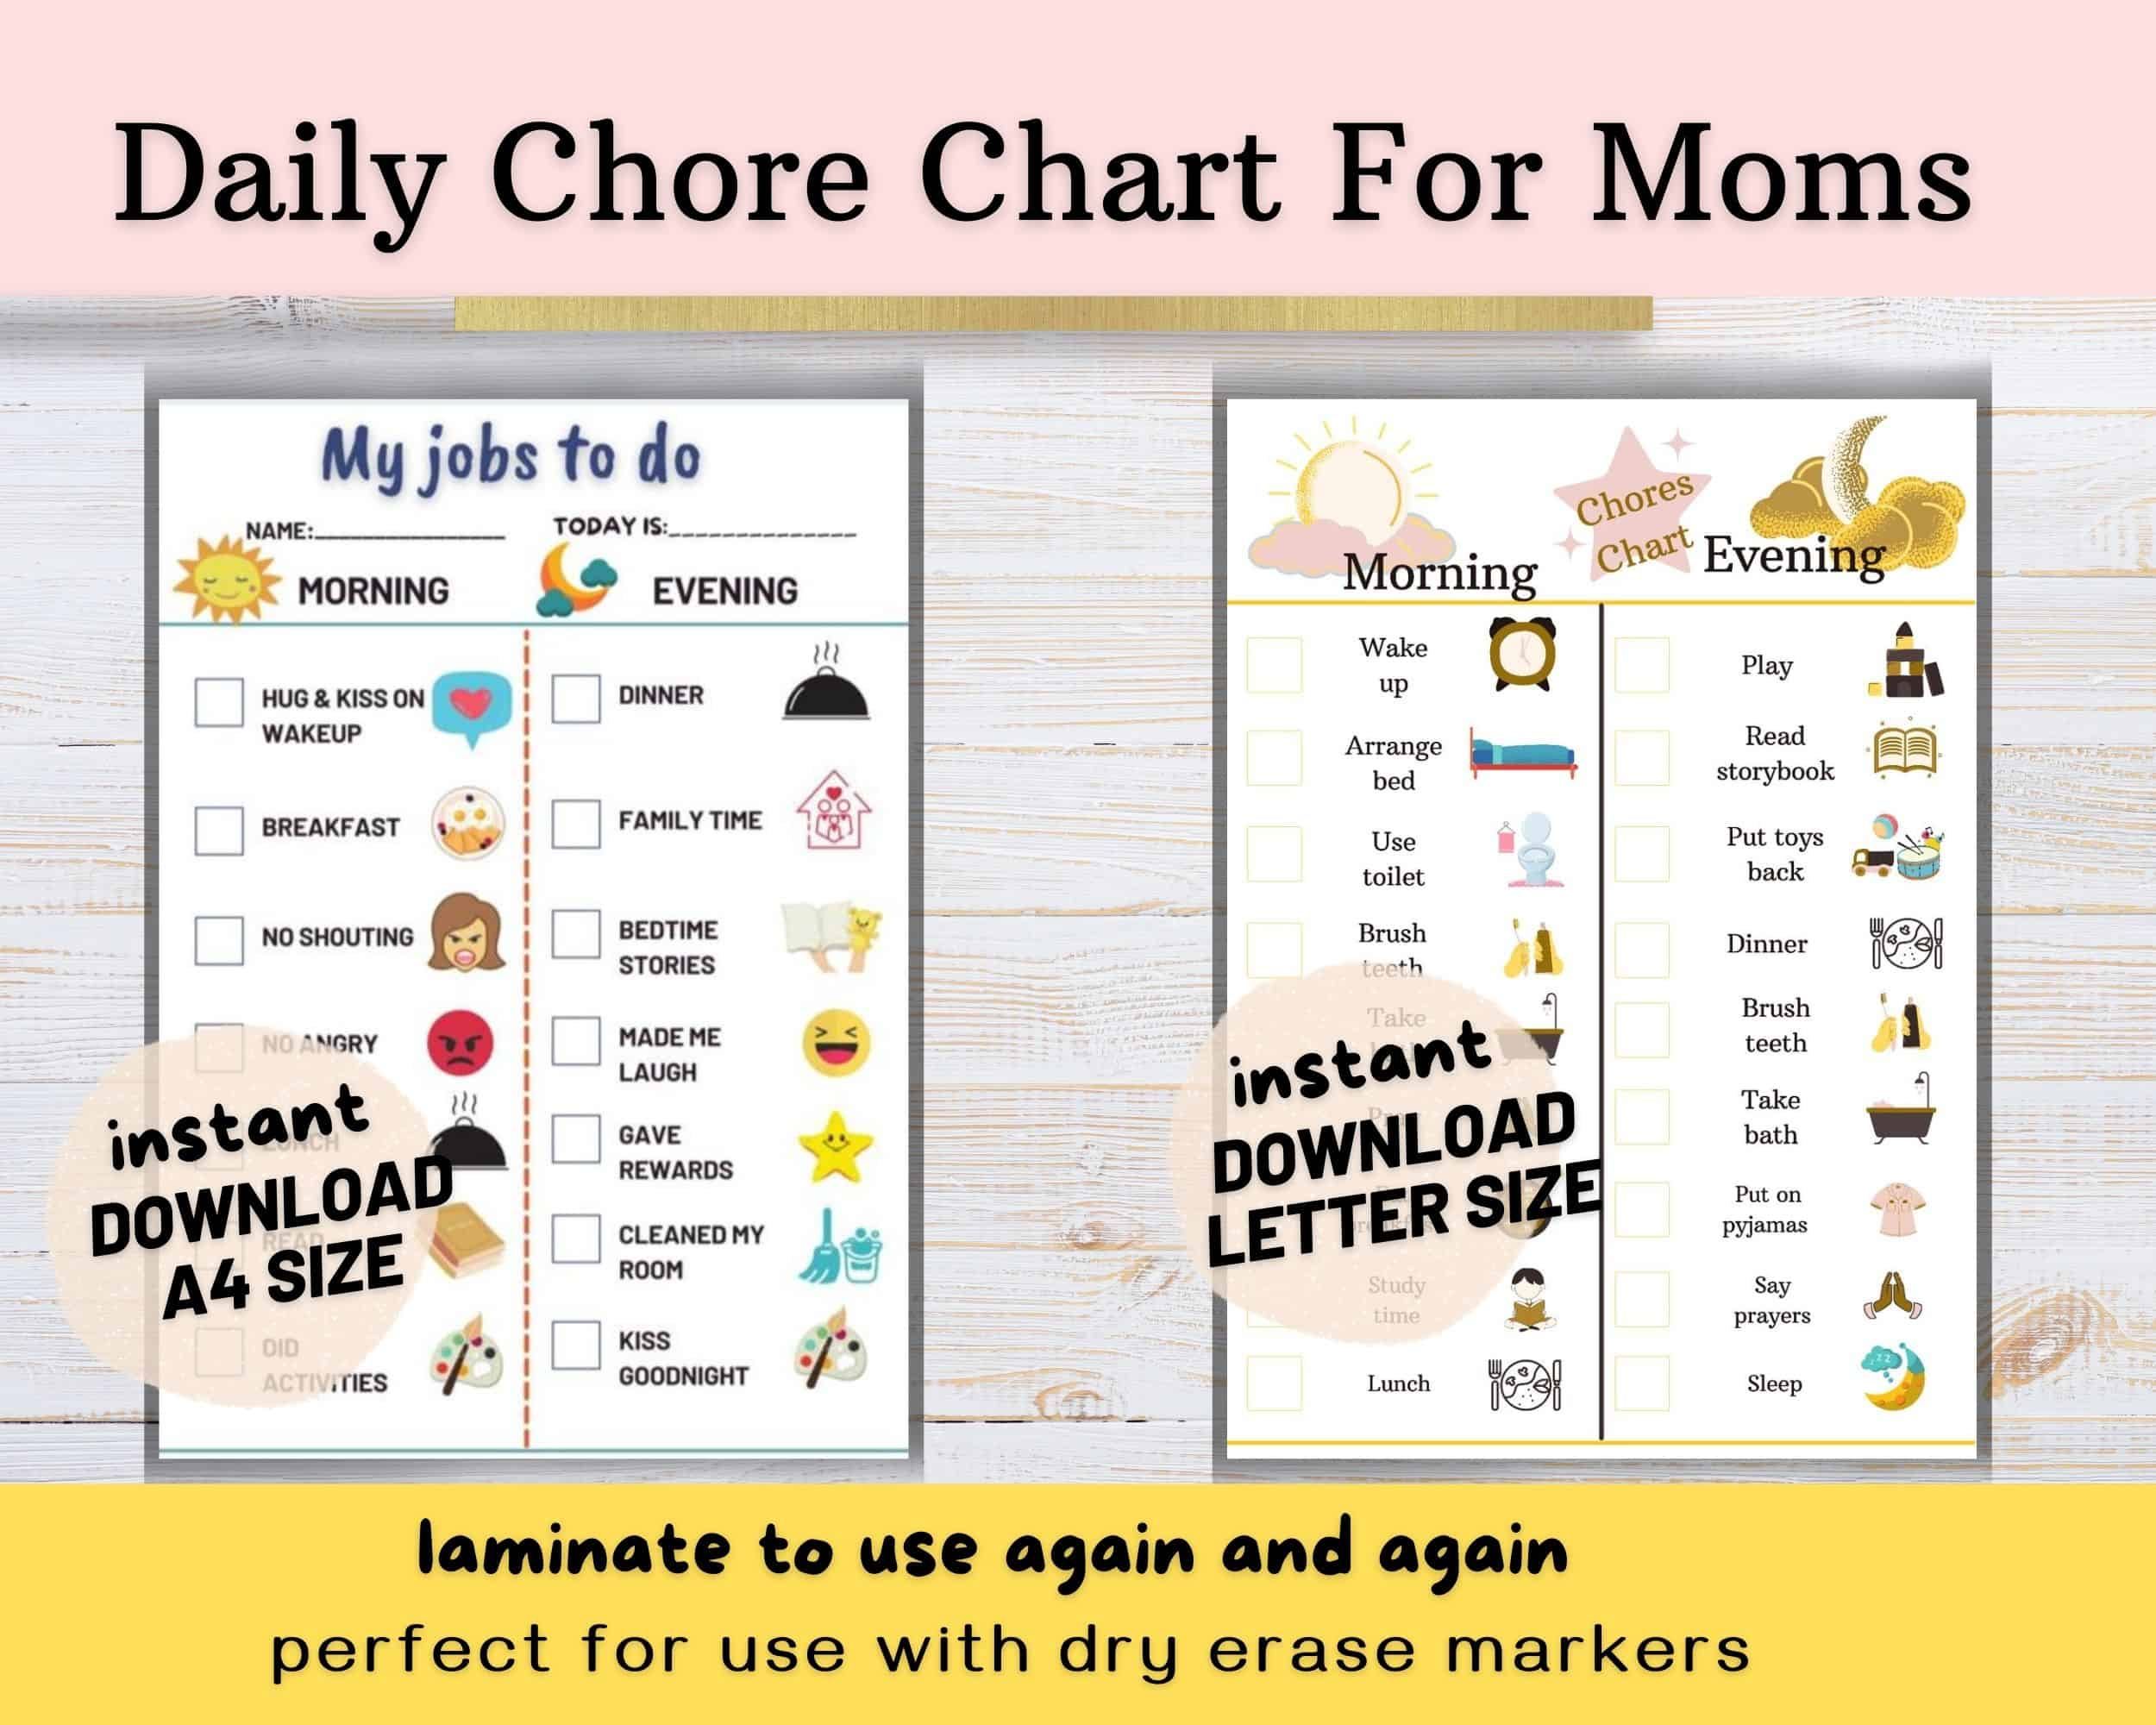 Daily Chore Chart for Moms Printable